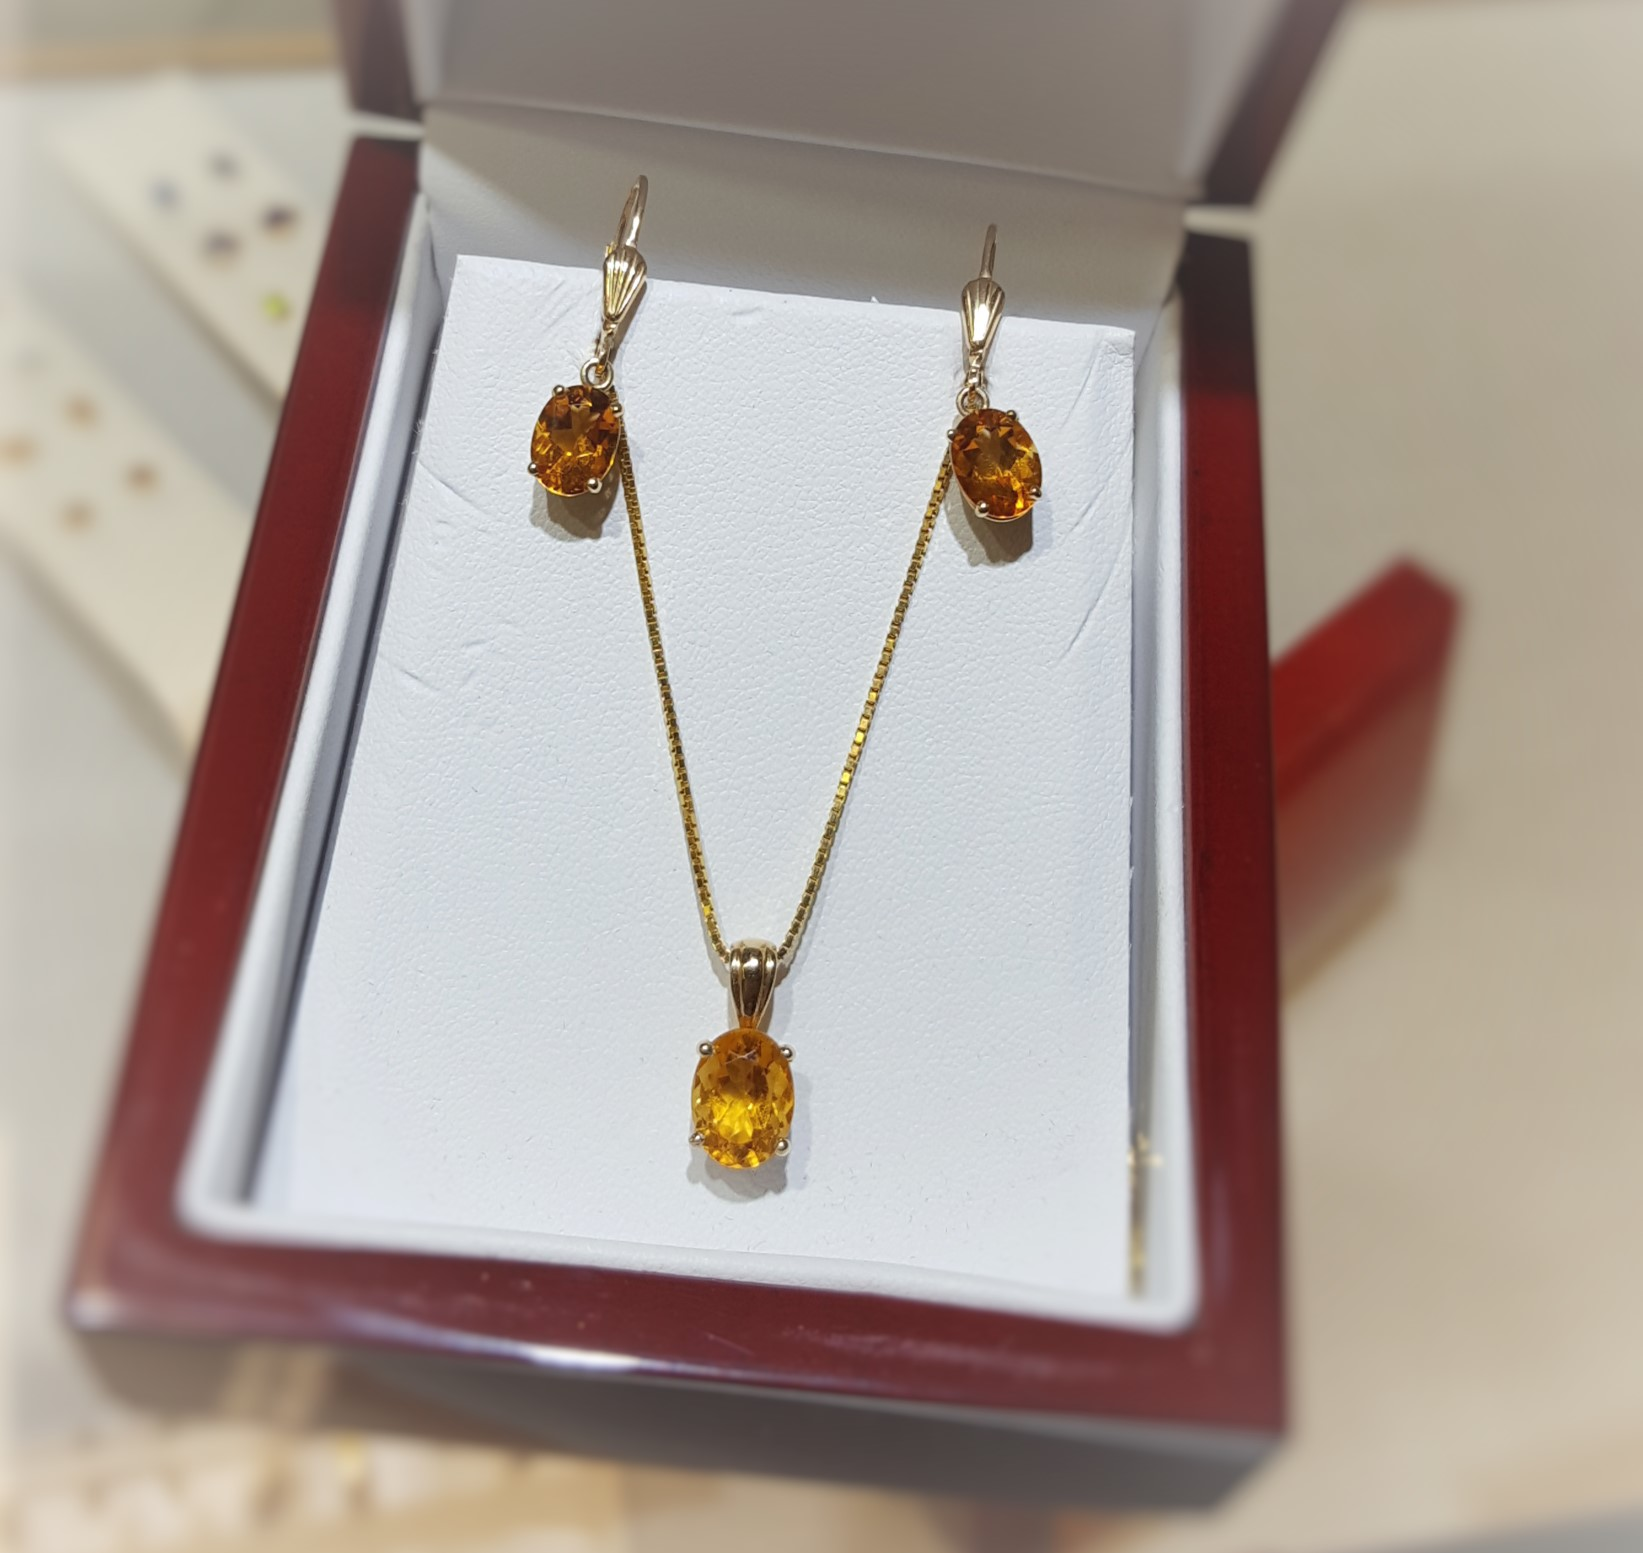 Citrine Pendant & Earrings